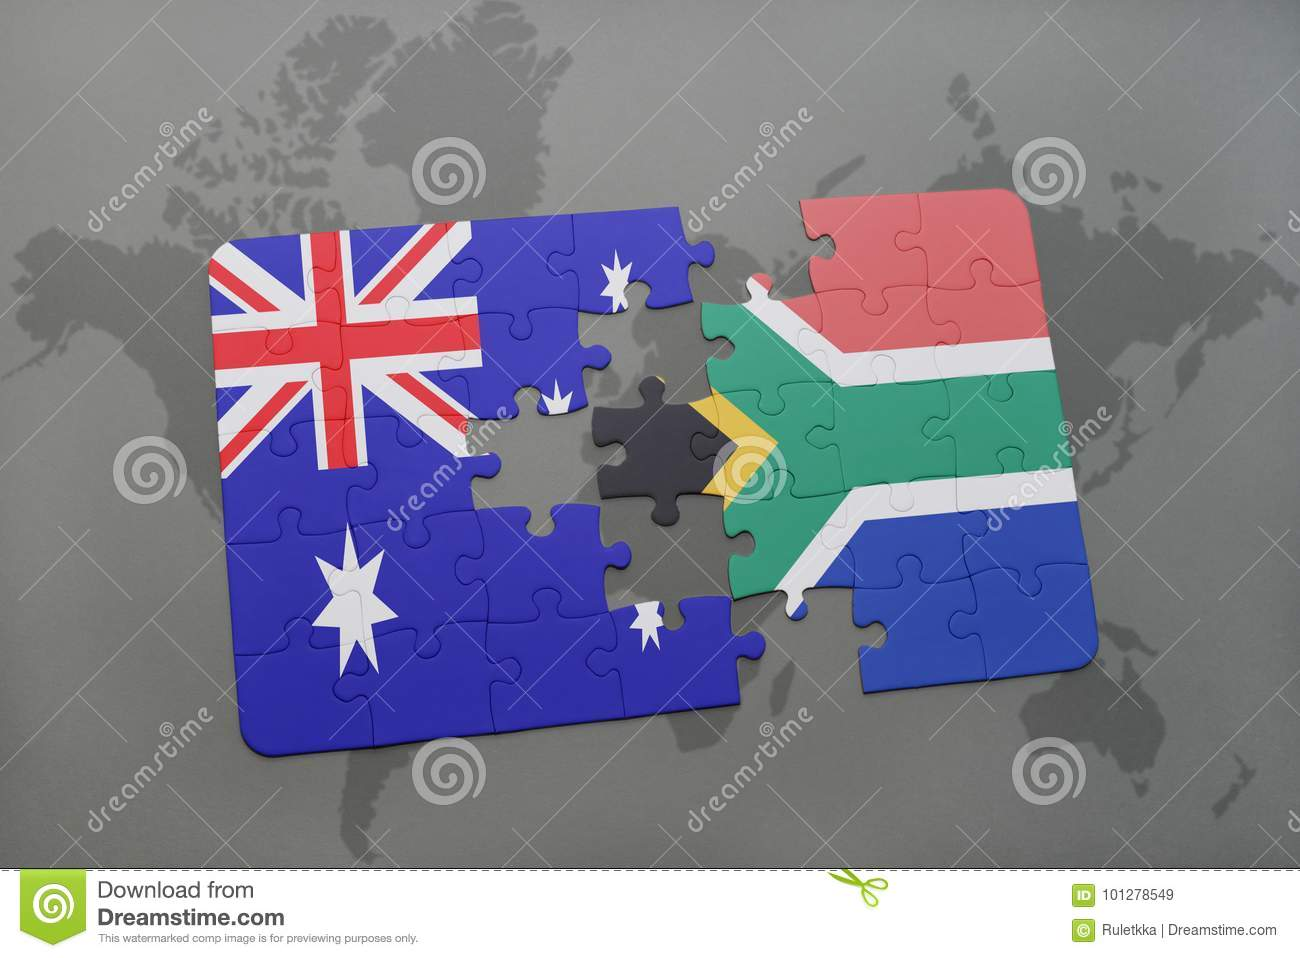 Australia Map Jigsaw.Puzzle With The National Flag Of Australia And South Africa On A